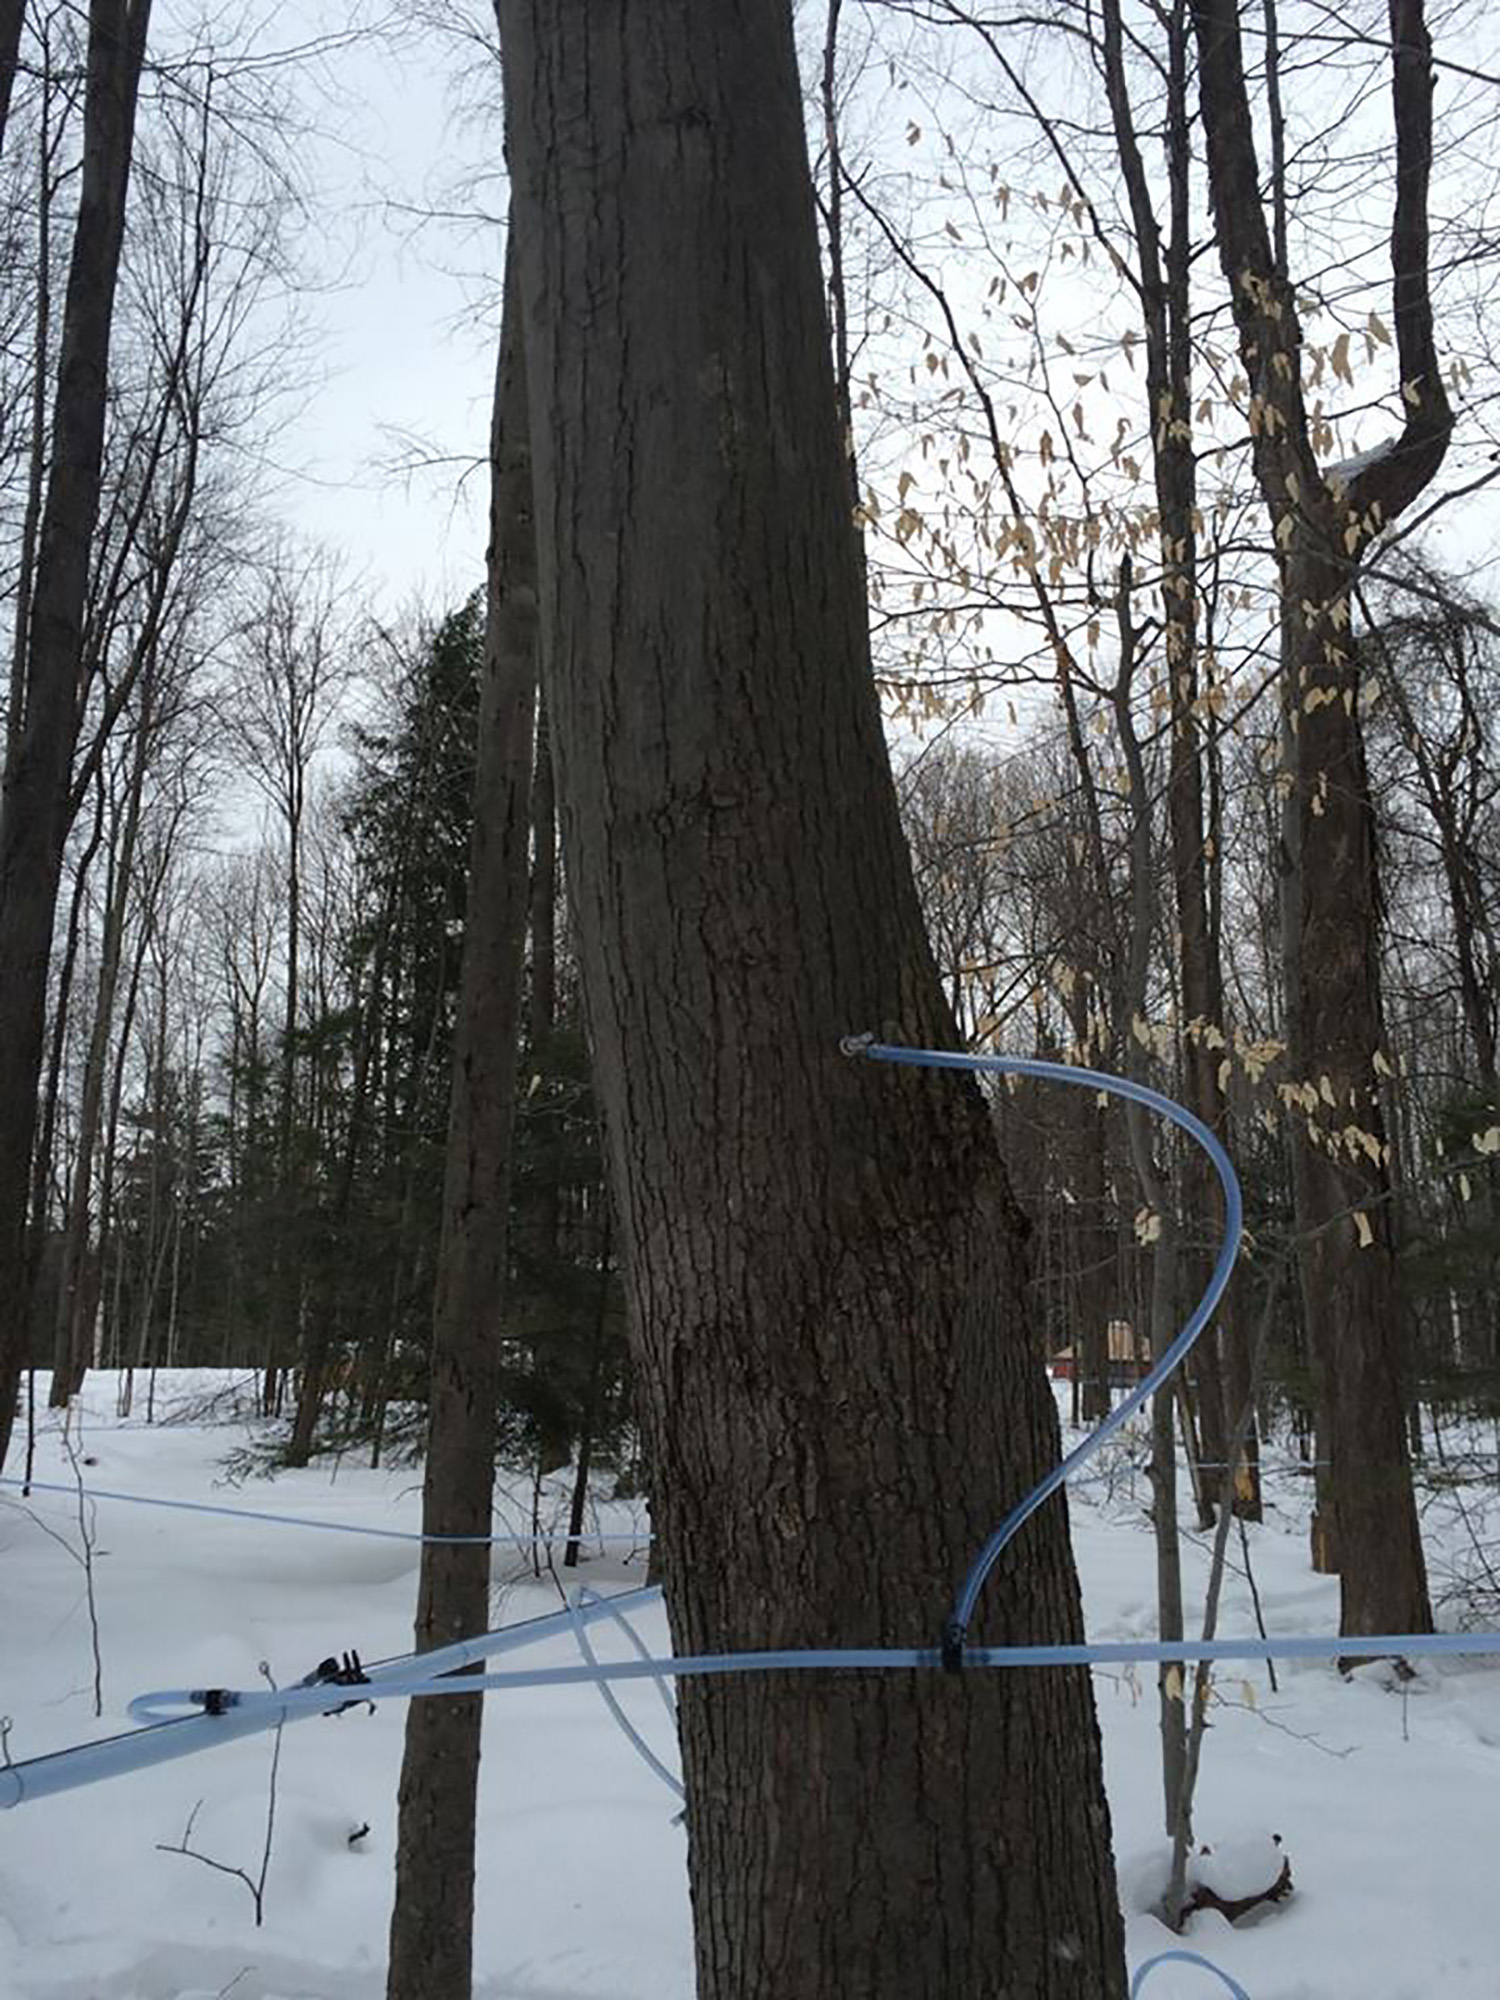 maple sugaring: tap